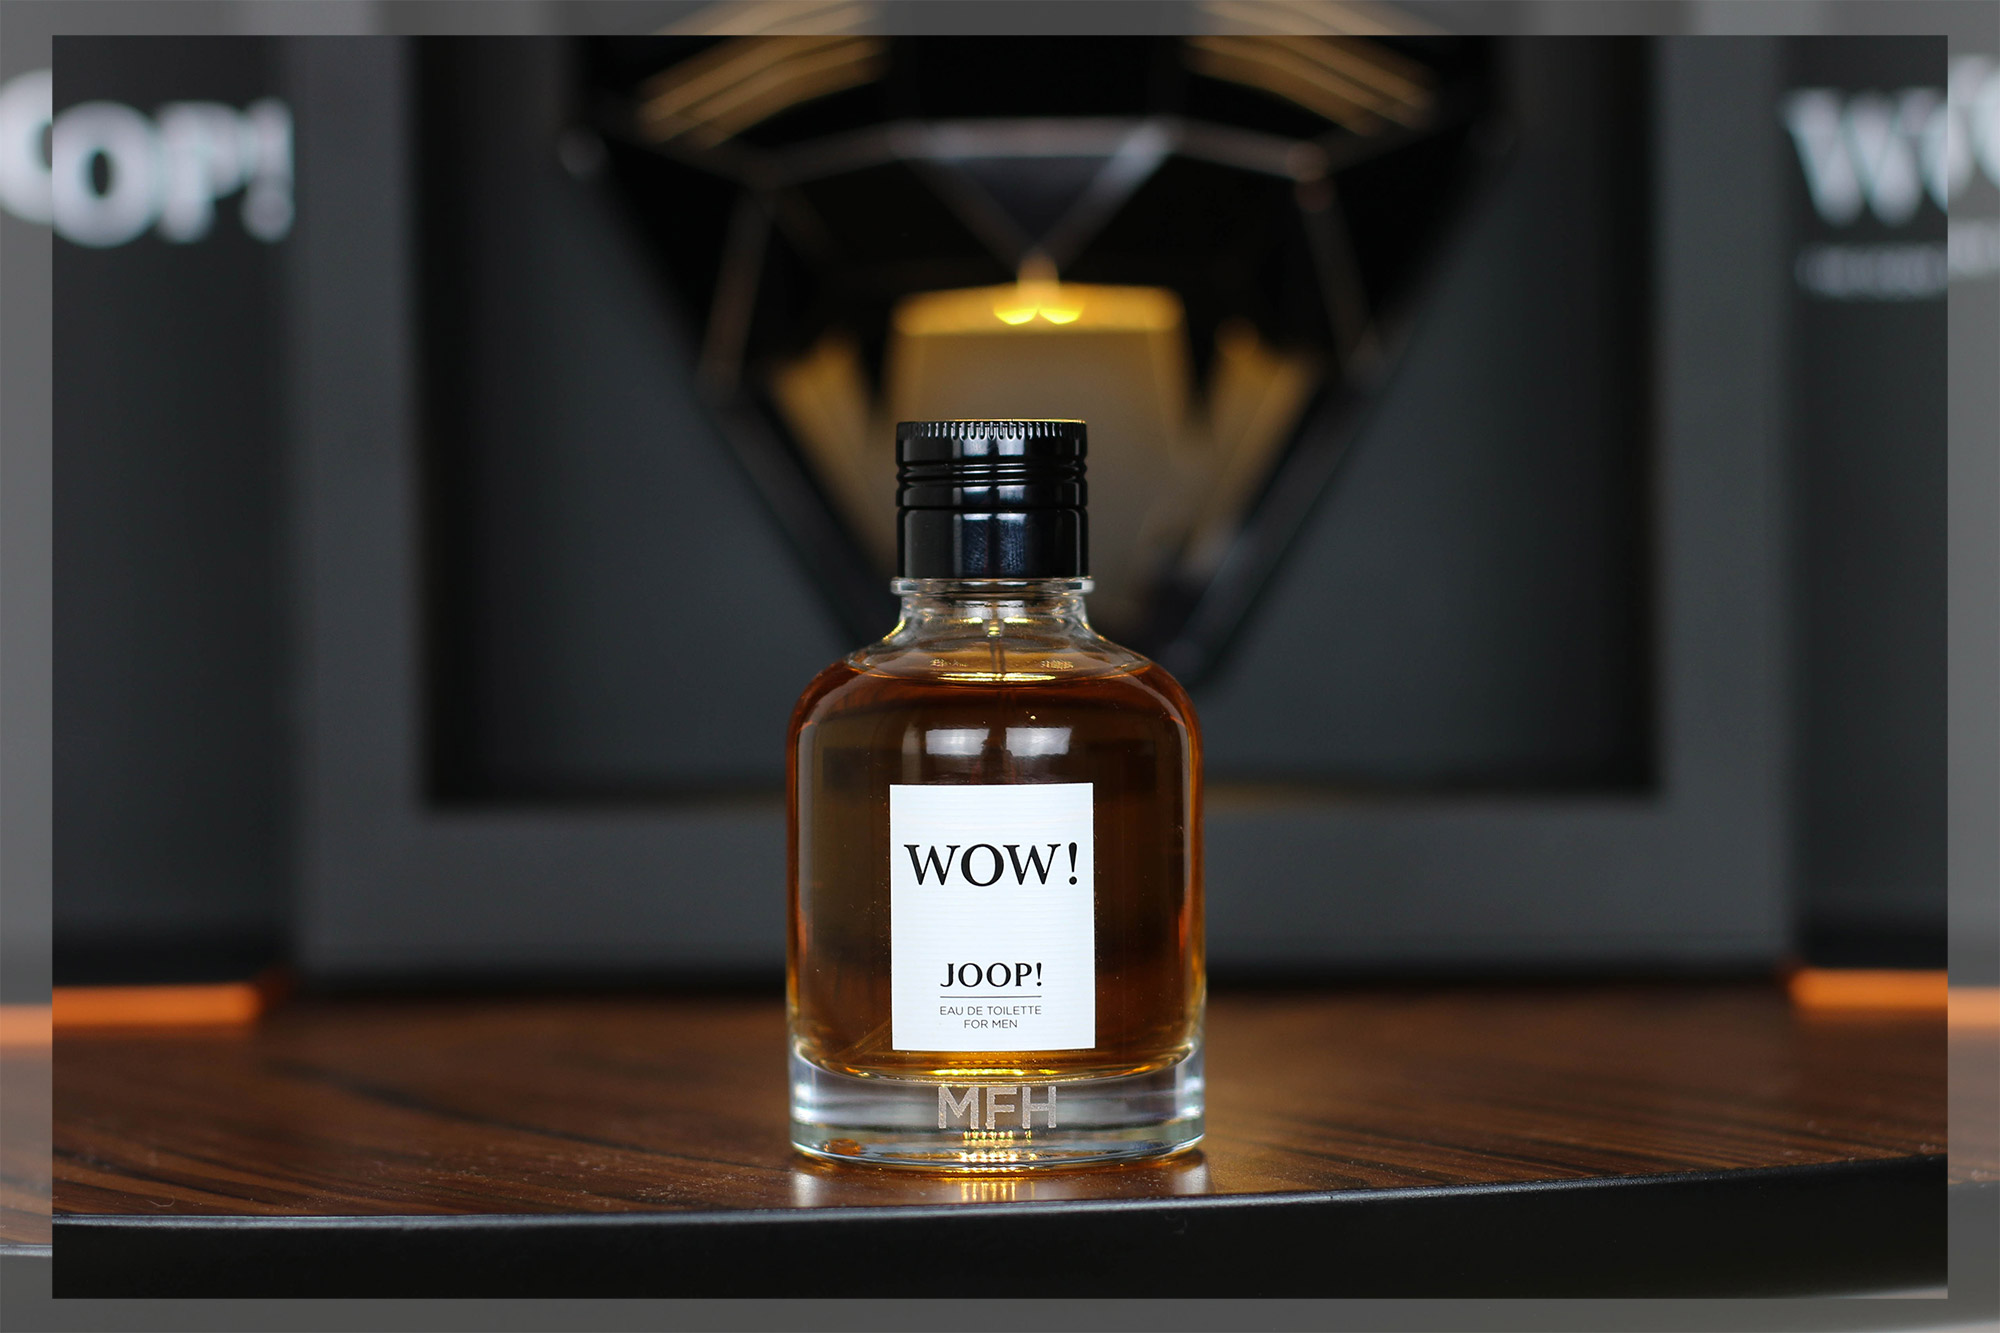 Joop-wow-review-bottle-man-for-himself